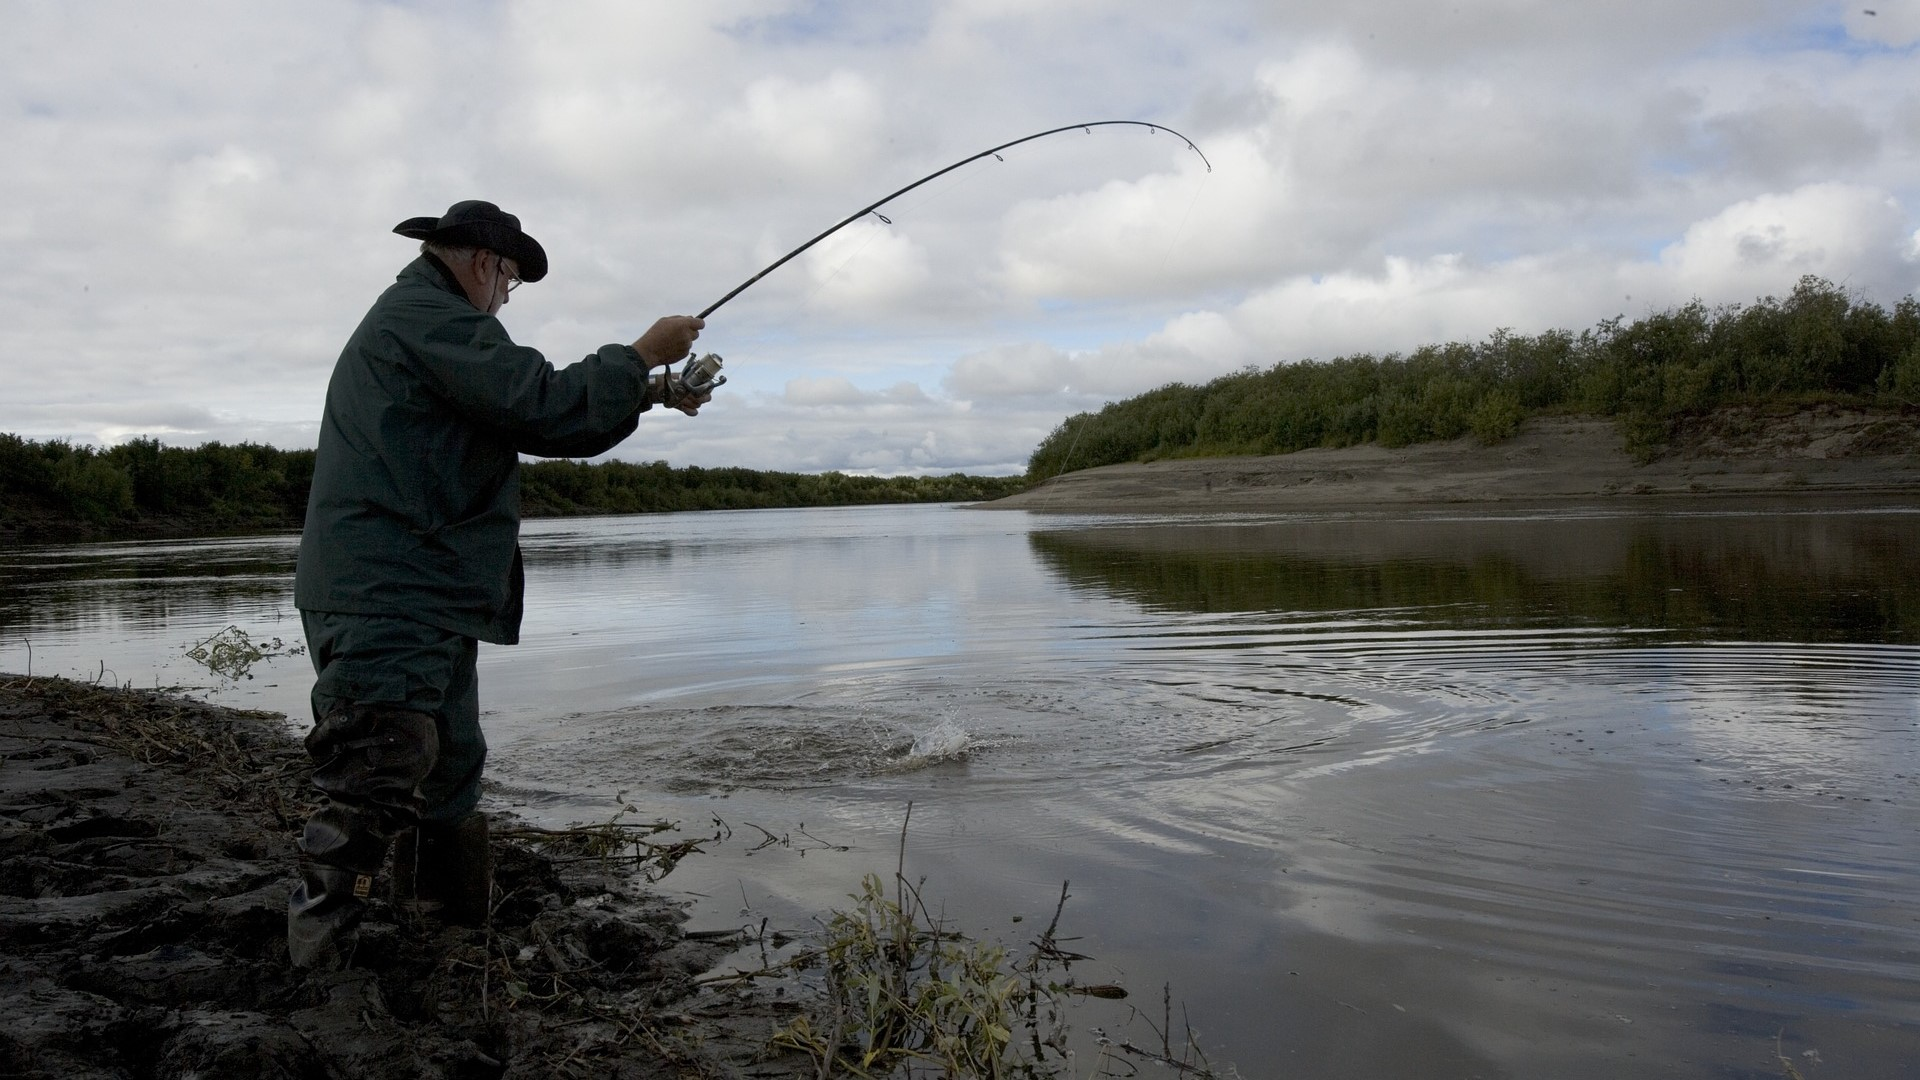 Inland fisheries ireland make new 2m funding call for Alaska fishing jobs application